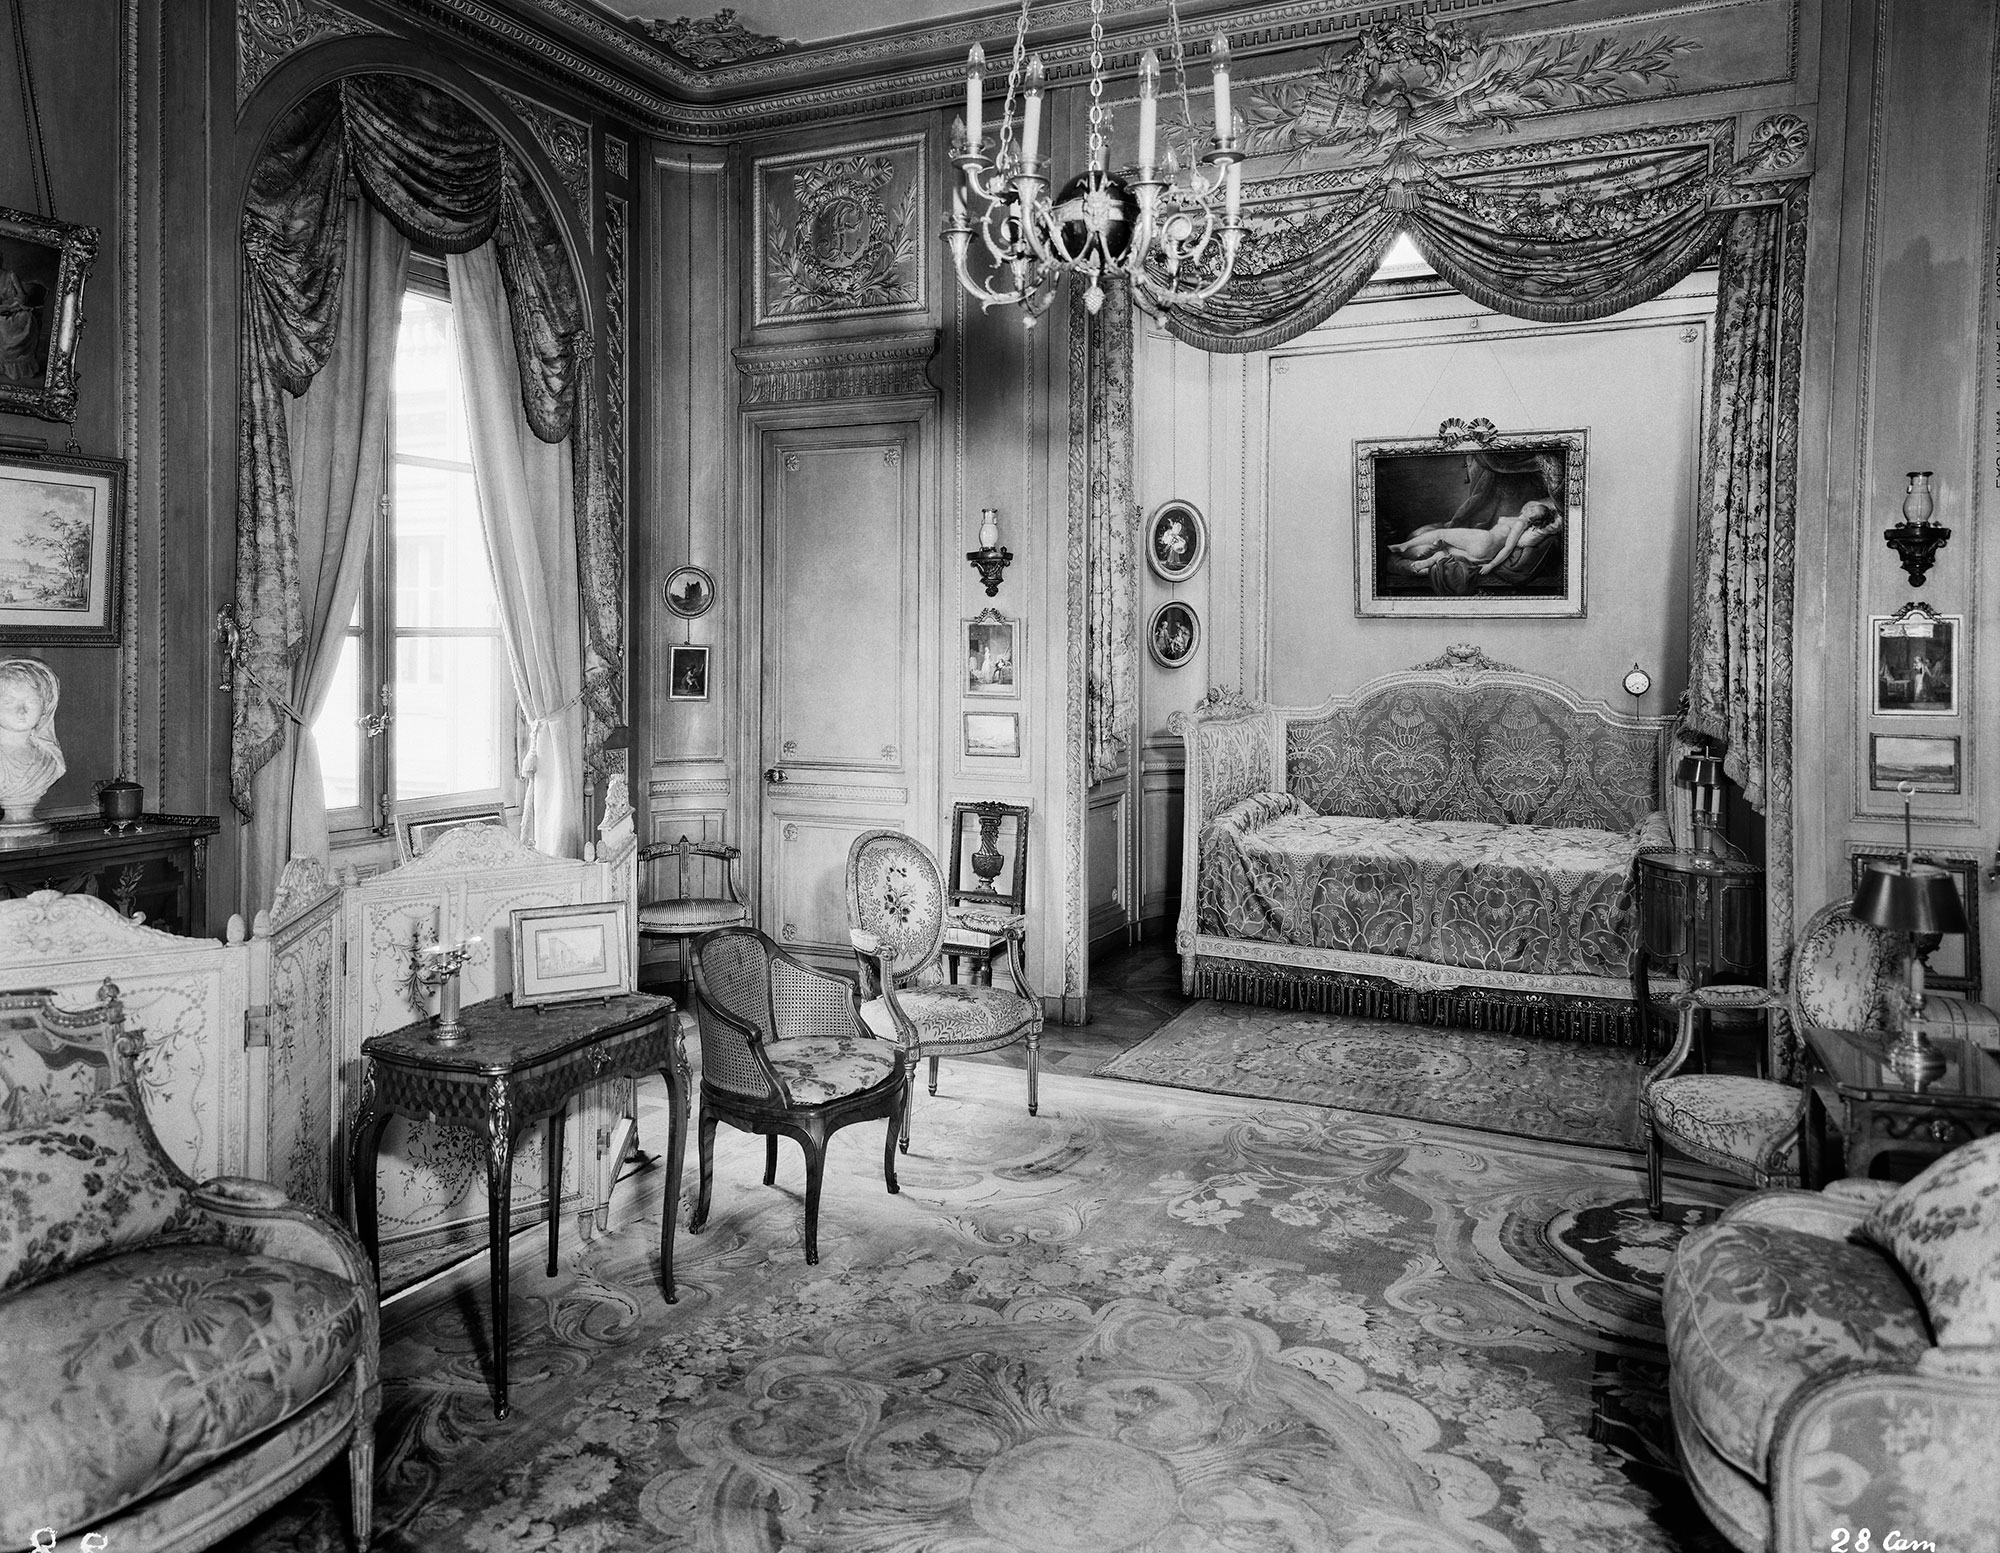 de la demeure au mus e photographies de l h tel particulier du comte mo se de camondo en 1936. Black Bedroom Furniture Sets. Home Design Ideas